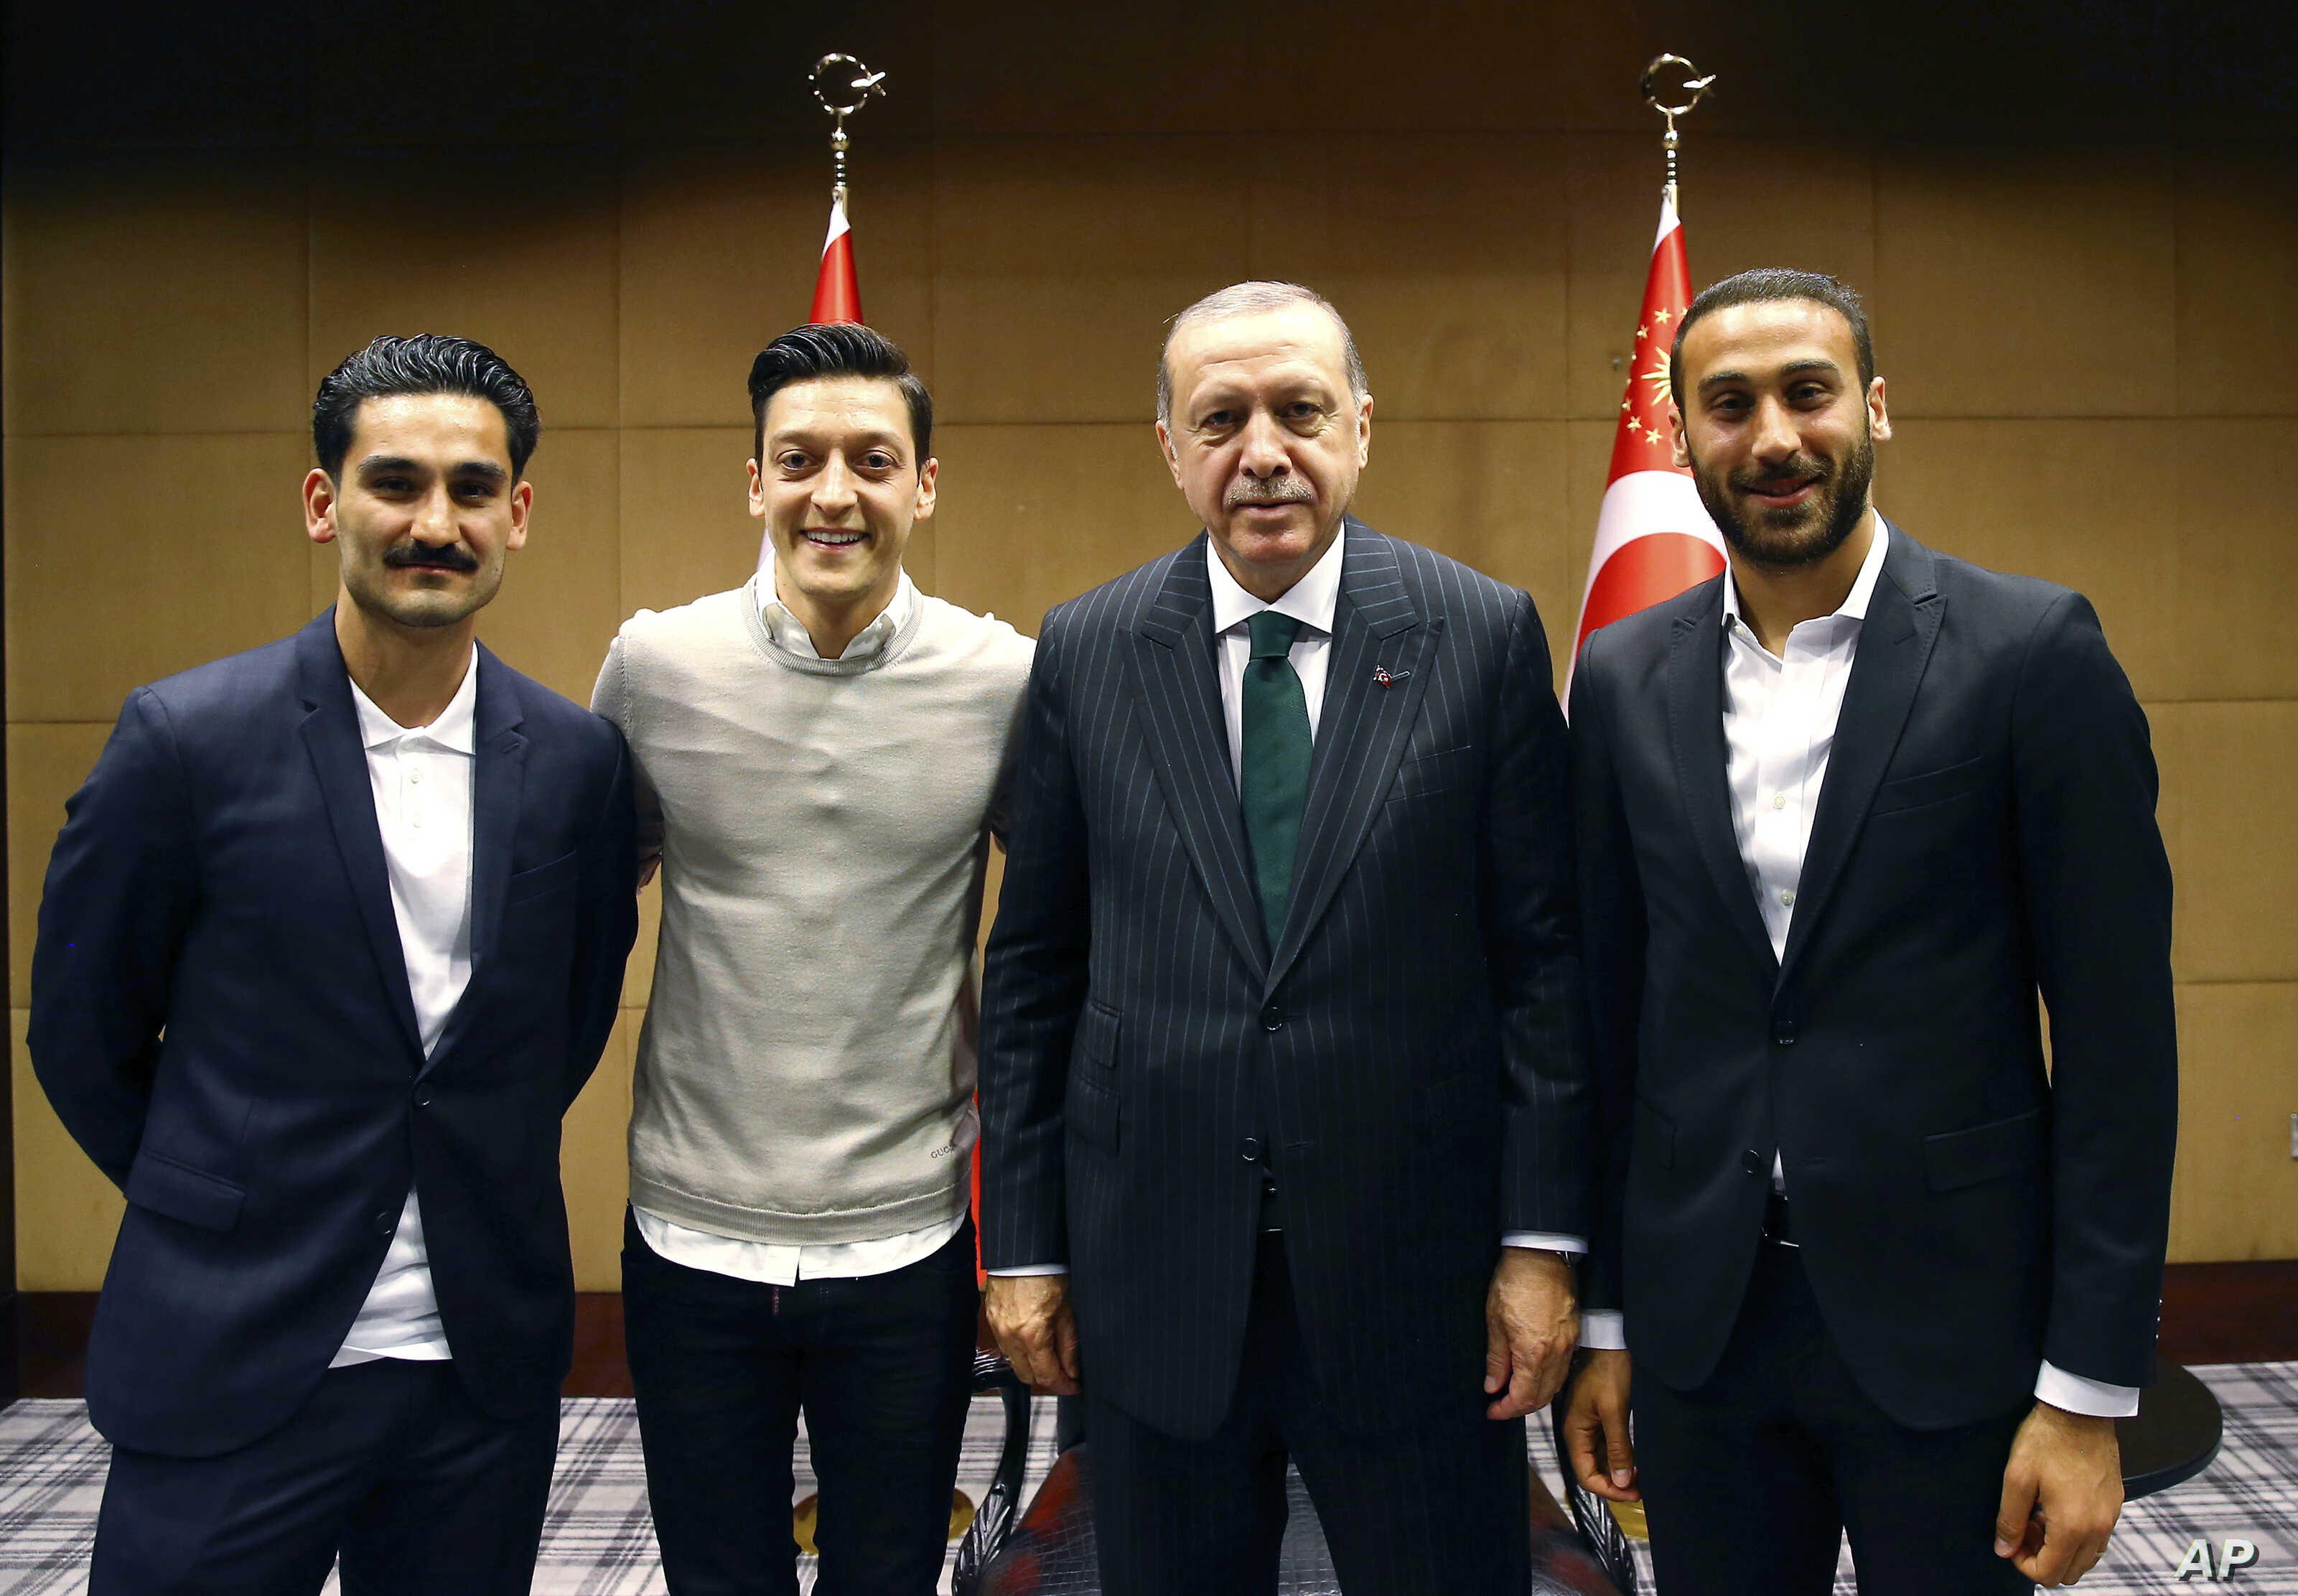 FILE - Turkey's President Recep Tayyip Erdogan, right, poses for a photo with soccer players Ilkay Gundogan, left, Mesut Ozil, center, in London, May 13, 2018.